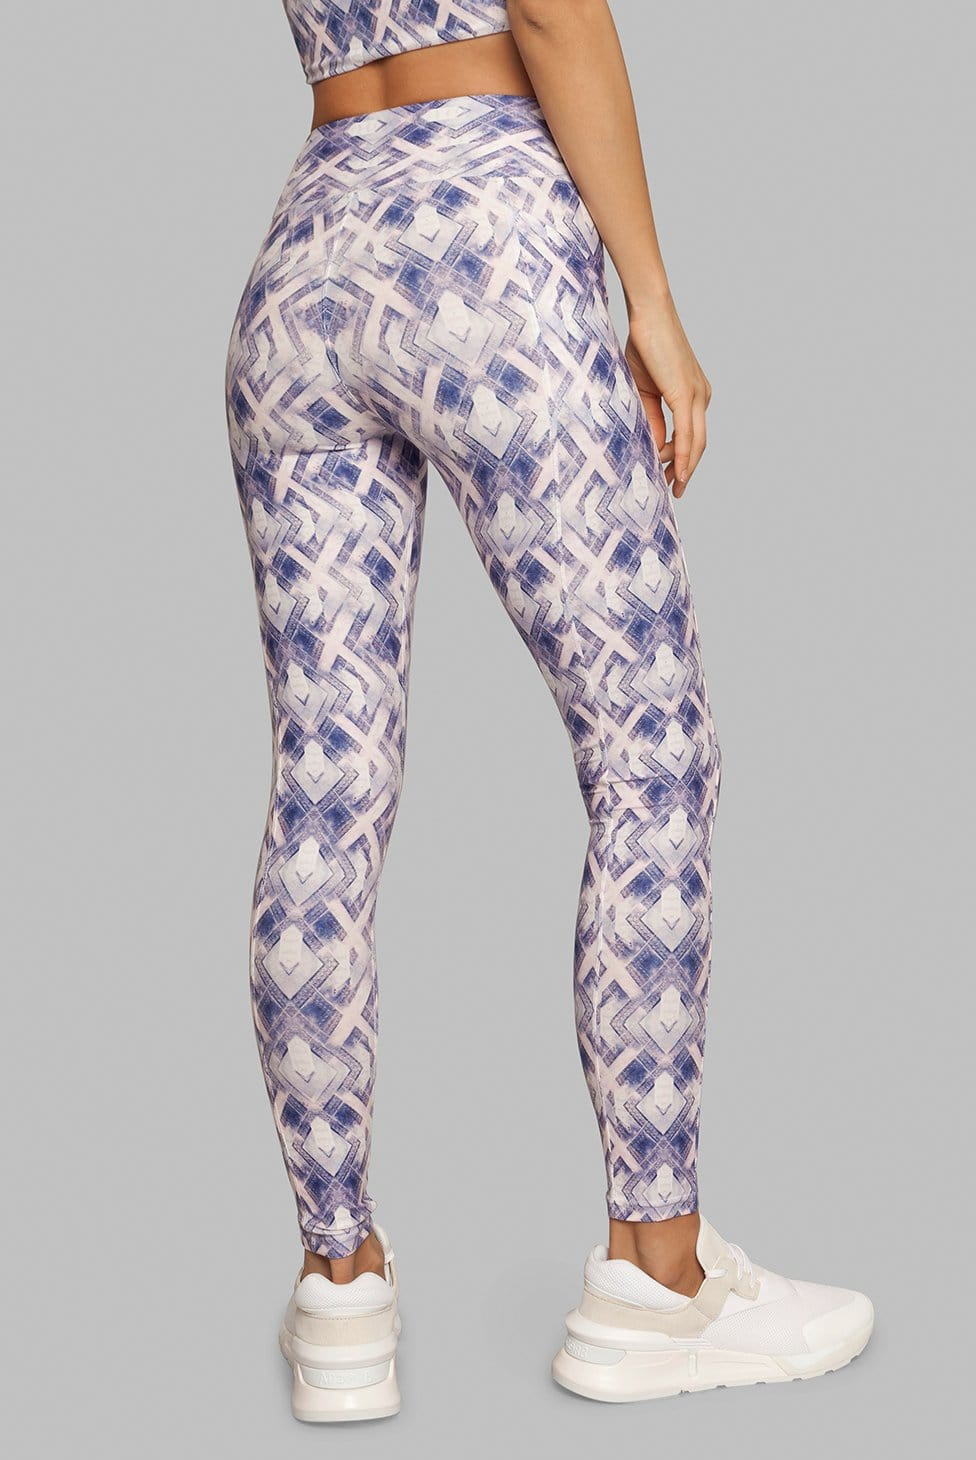 Oasis Crossover Pocket Legging